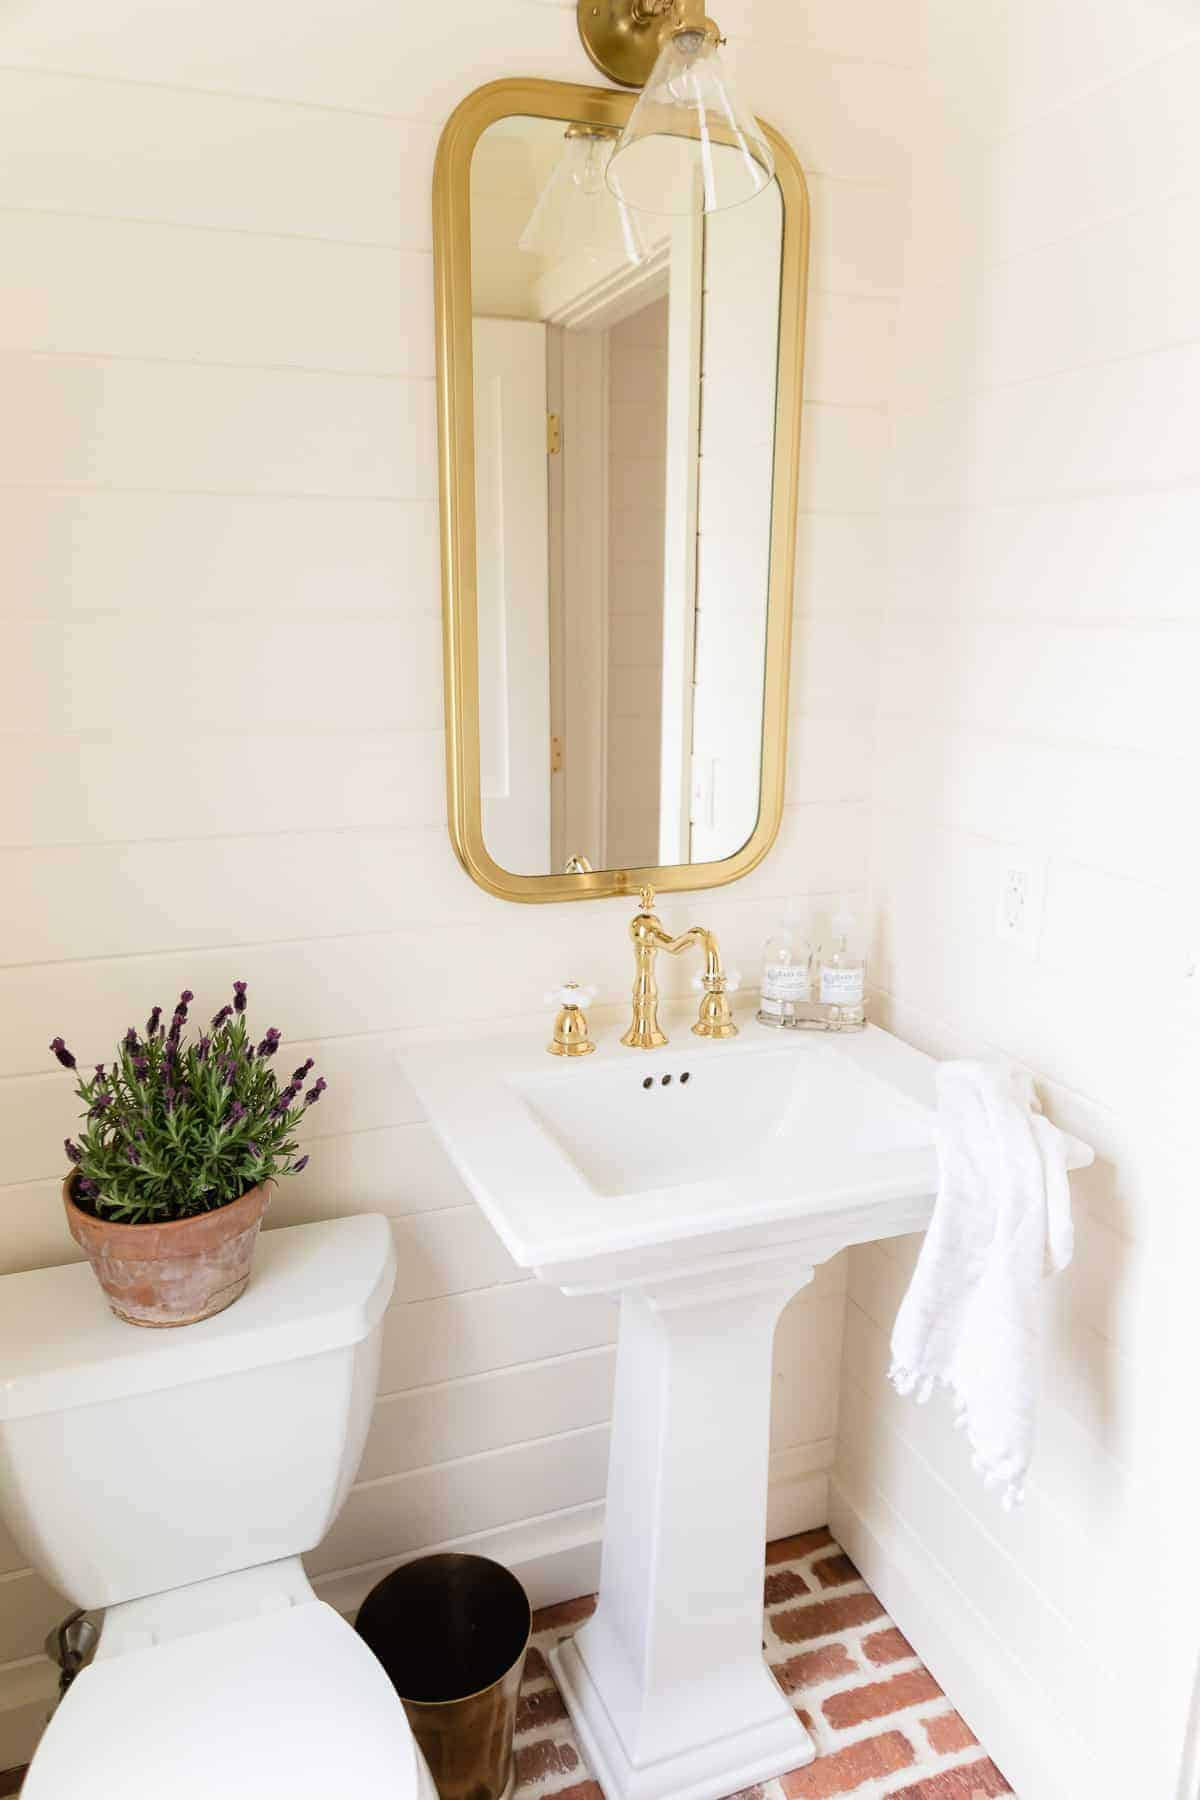 brass sconce over mirror and sink in bathroom